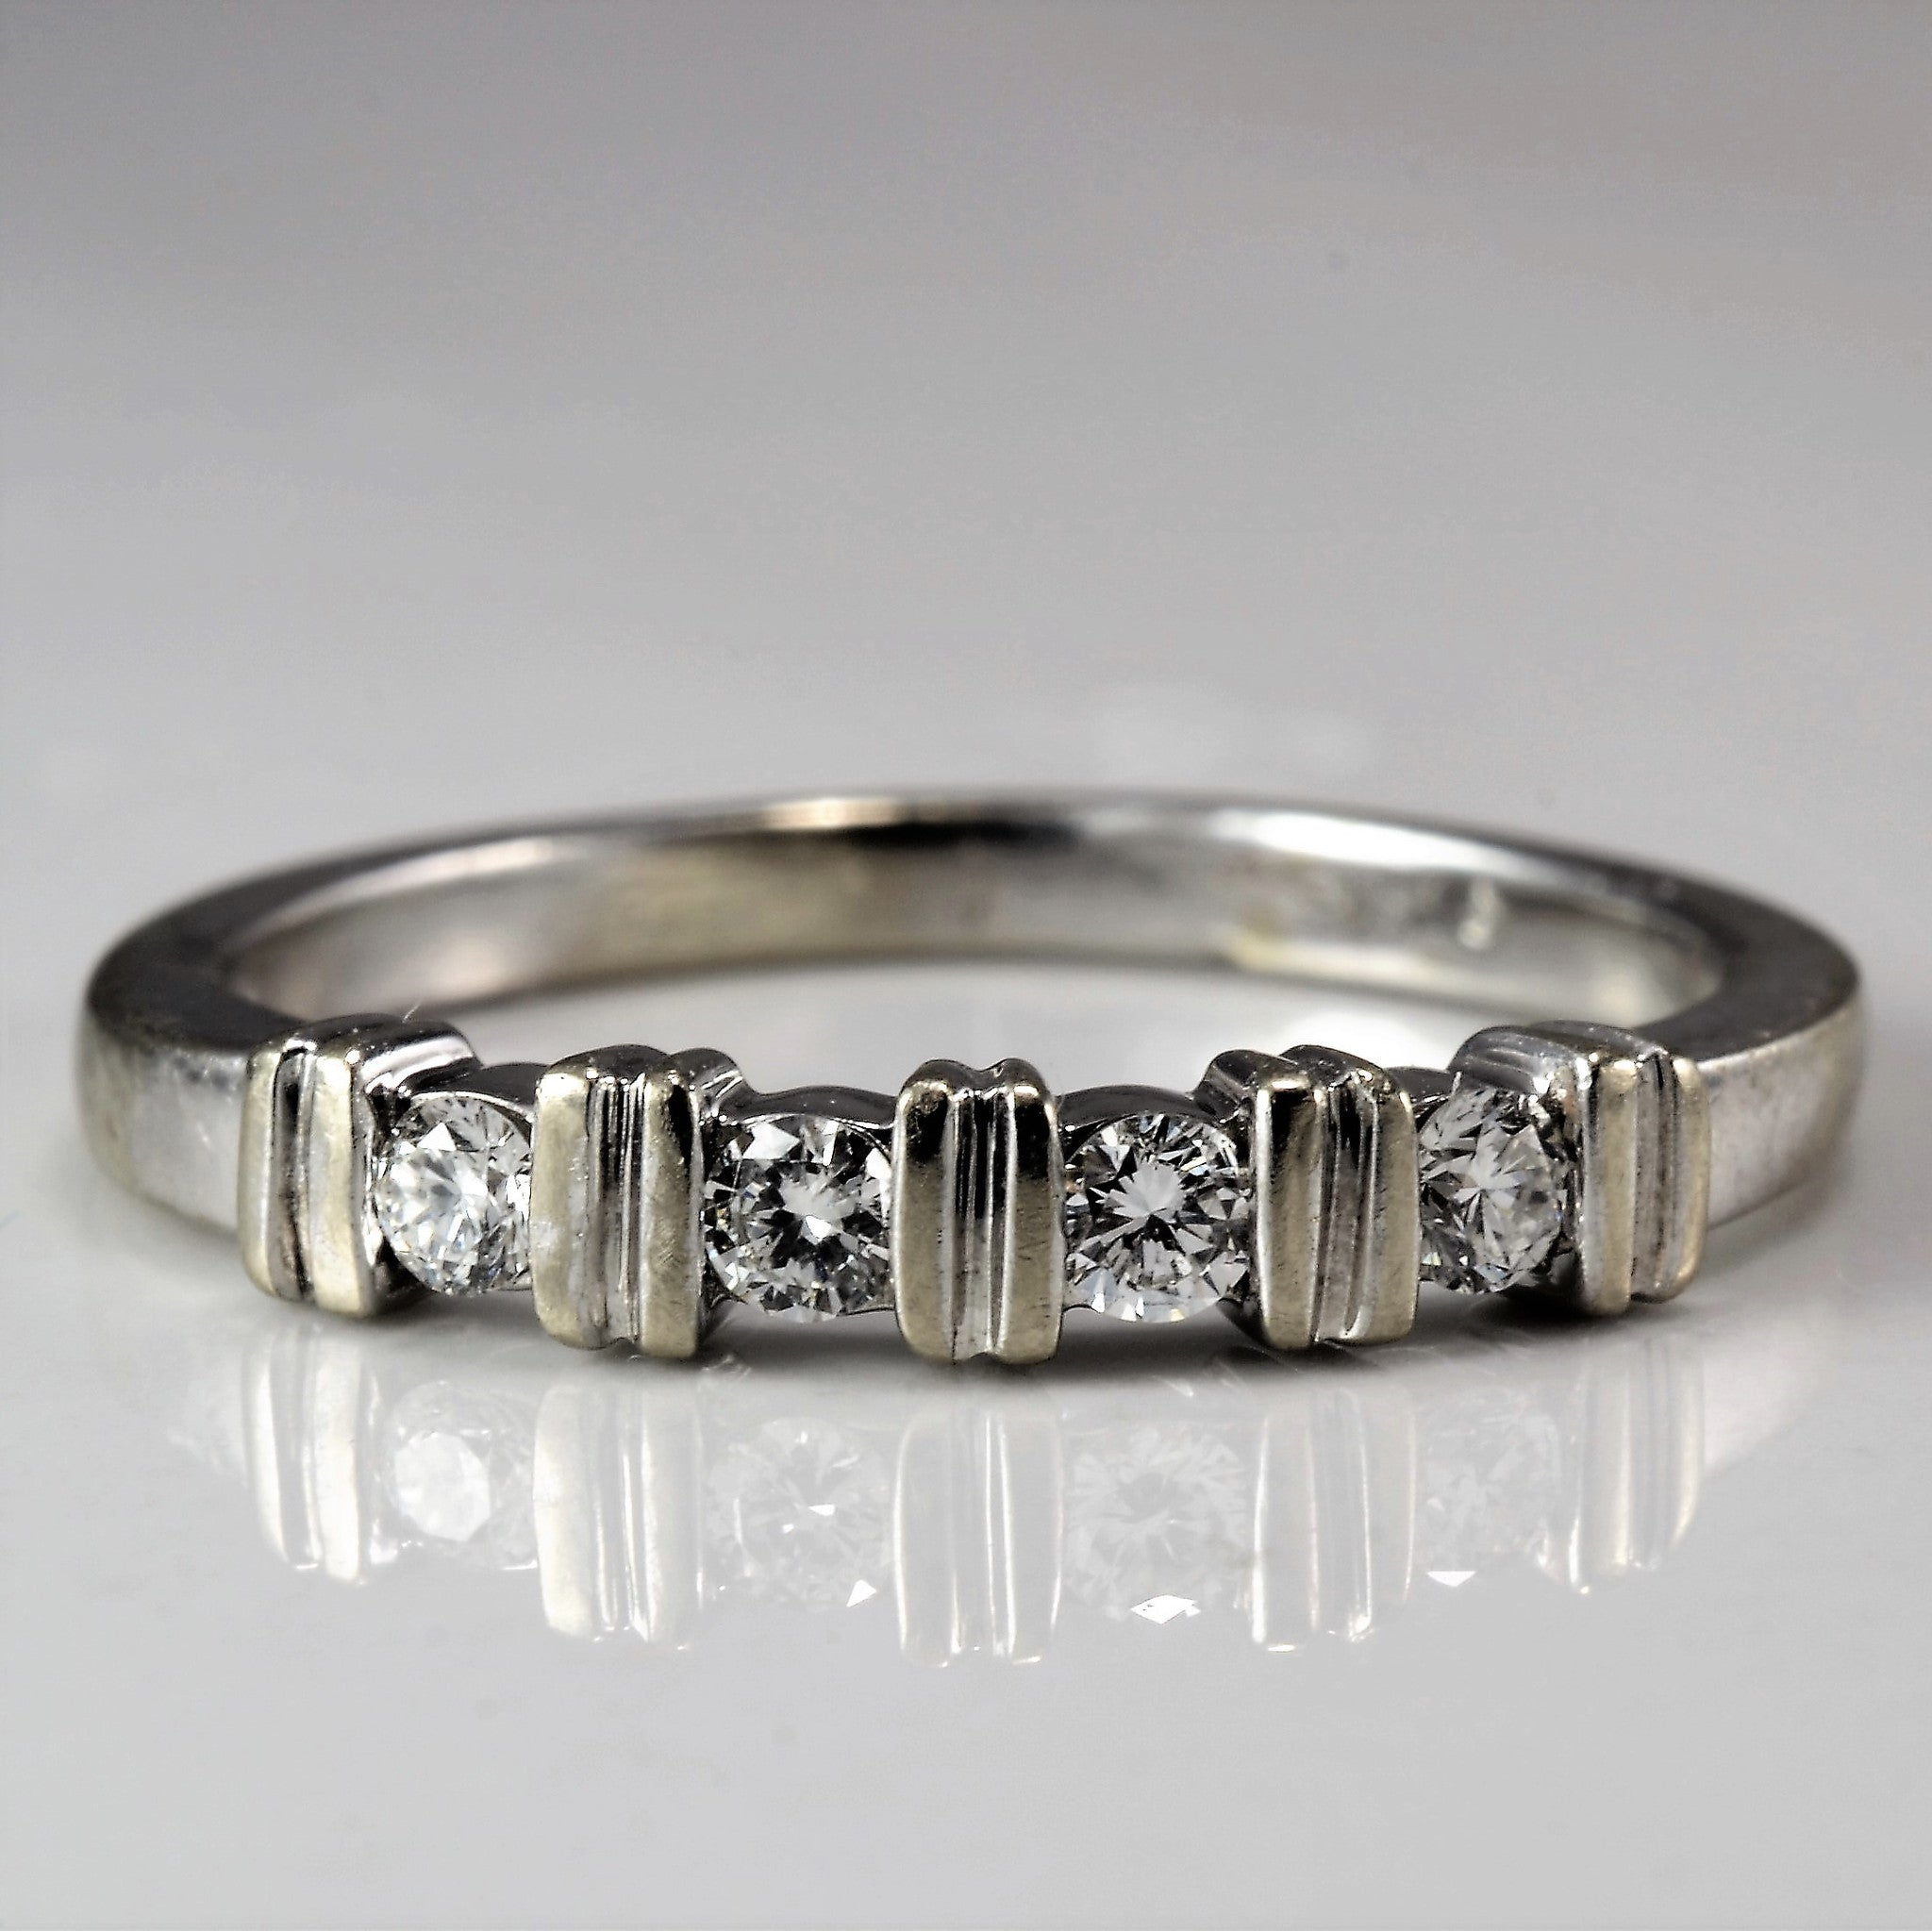 Four Stone Diamond Wedding Band | 0.10 ctw, SZ 4.5 |